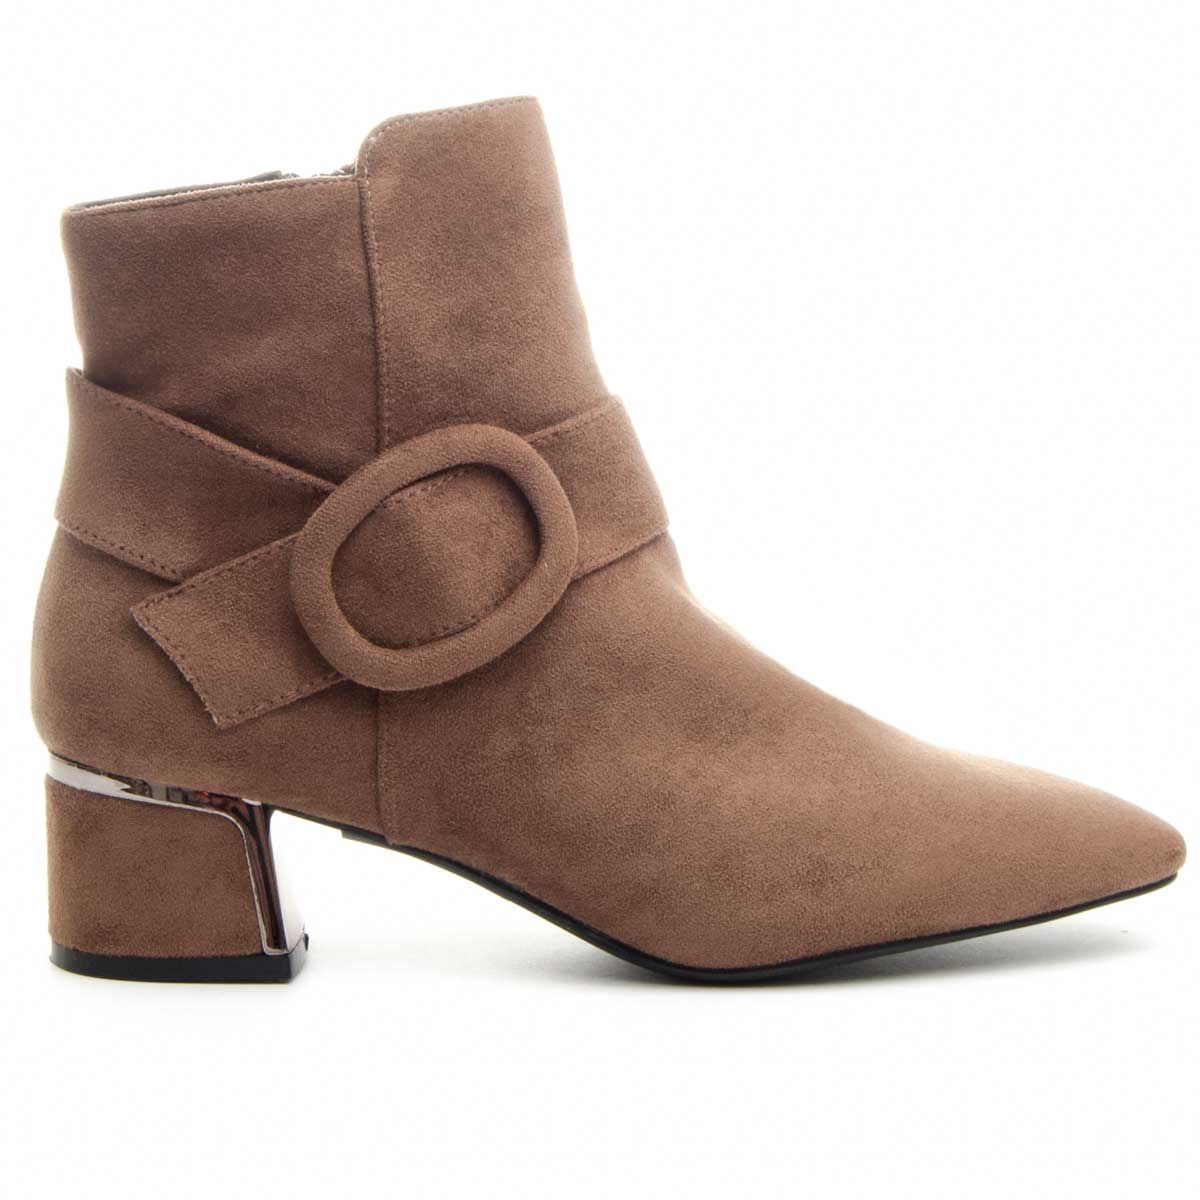 Montevita Heeled Ankle Boot in Taupe